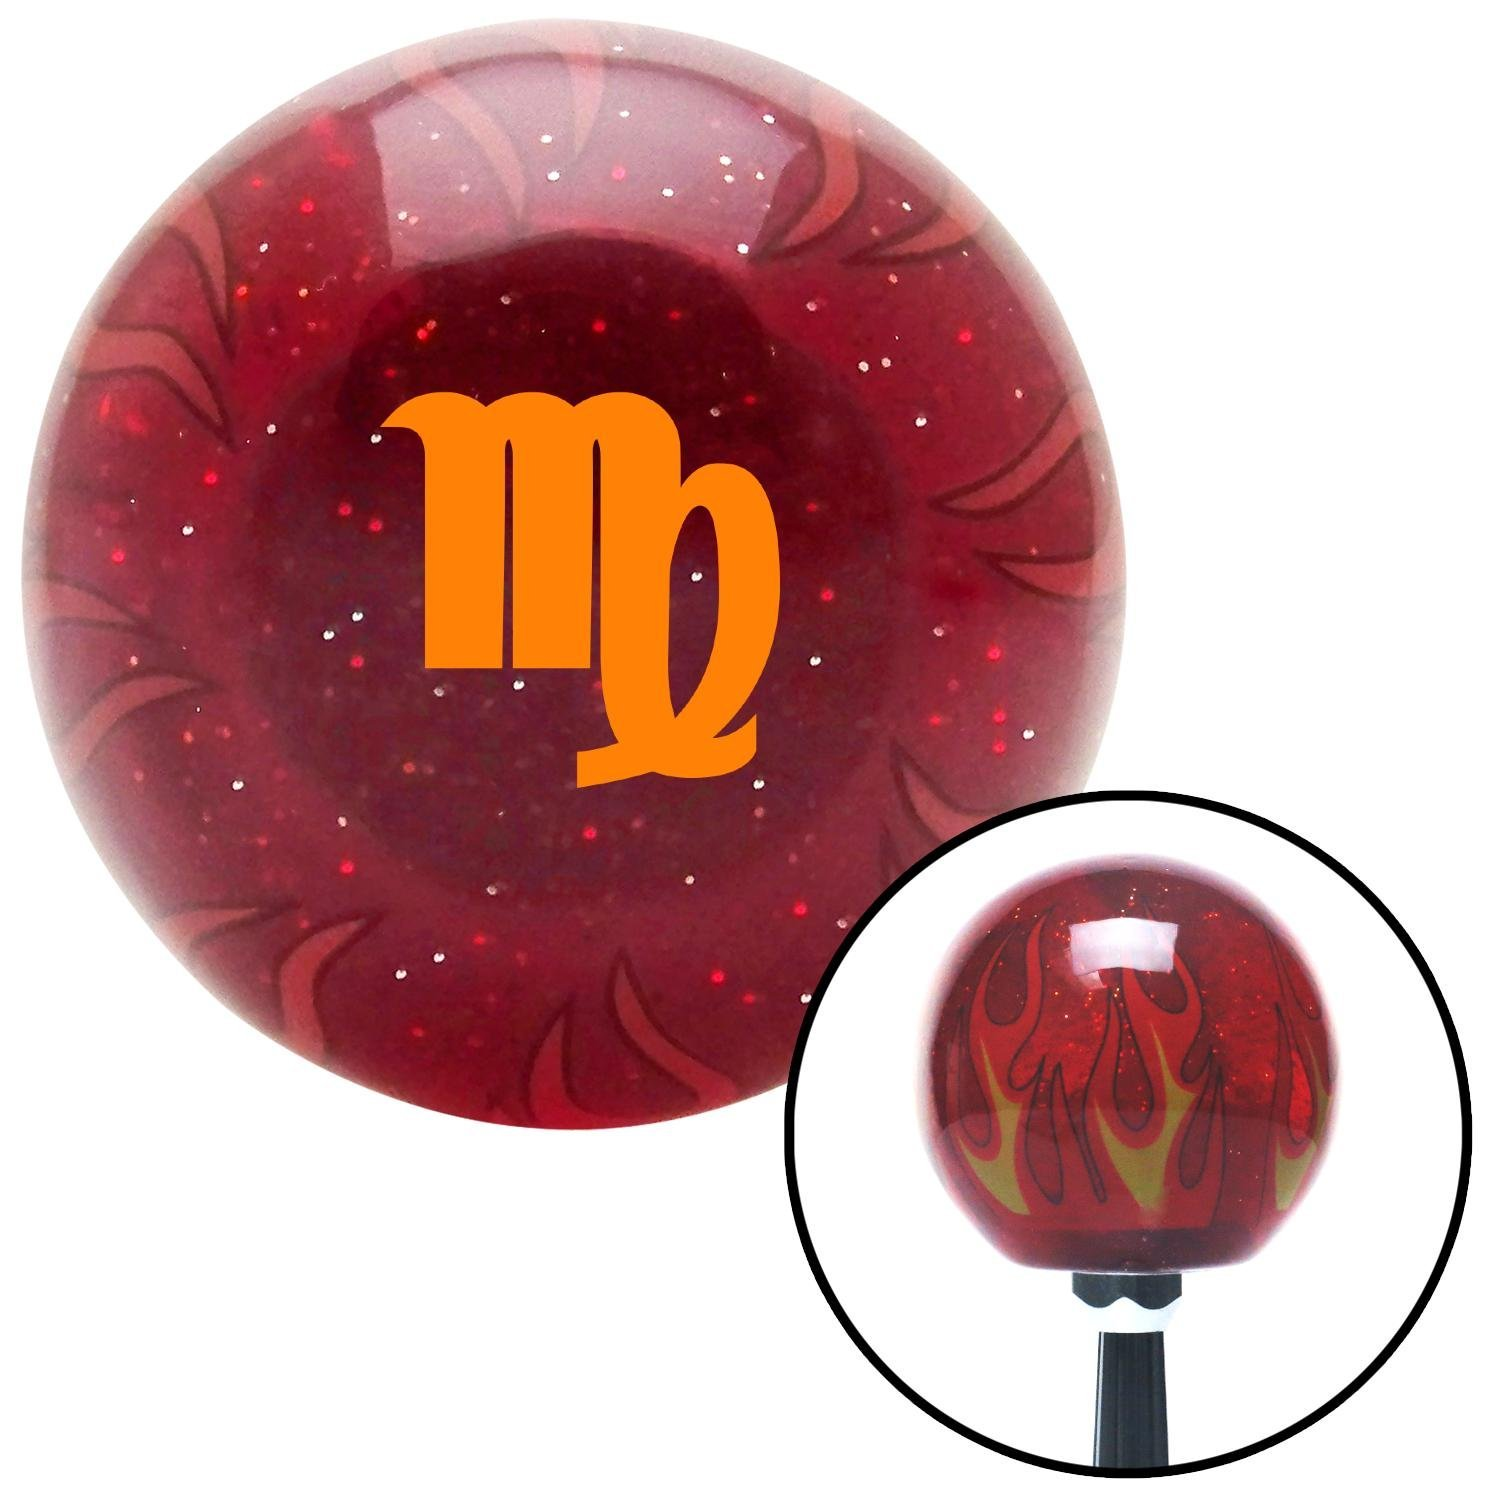 American Shifter 296906 Shift Knob Orange Virgo Red Flame Metal Flake with M16 x 1.5 Insert